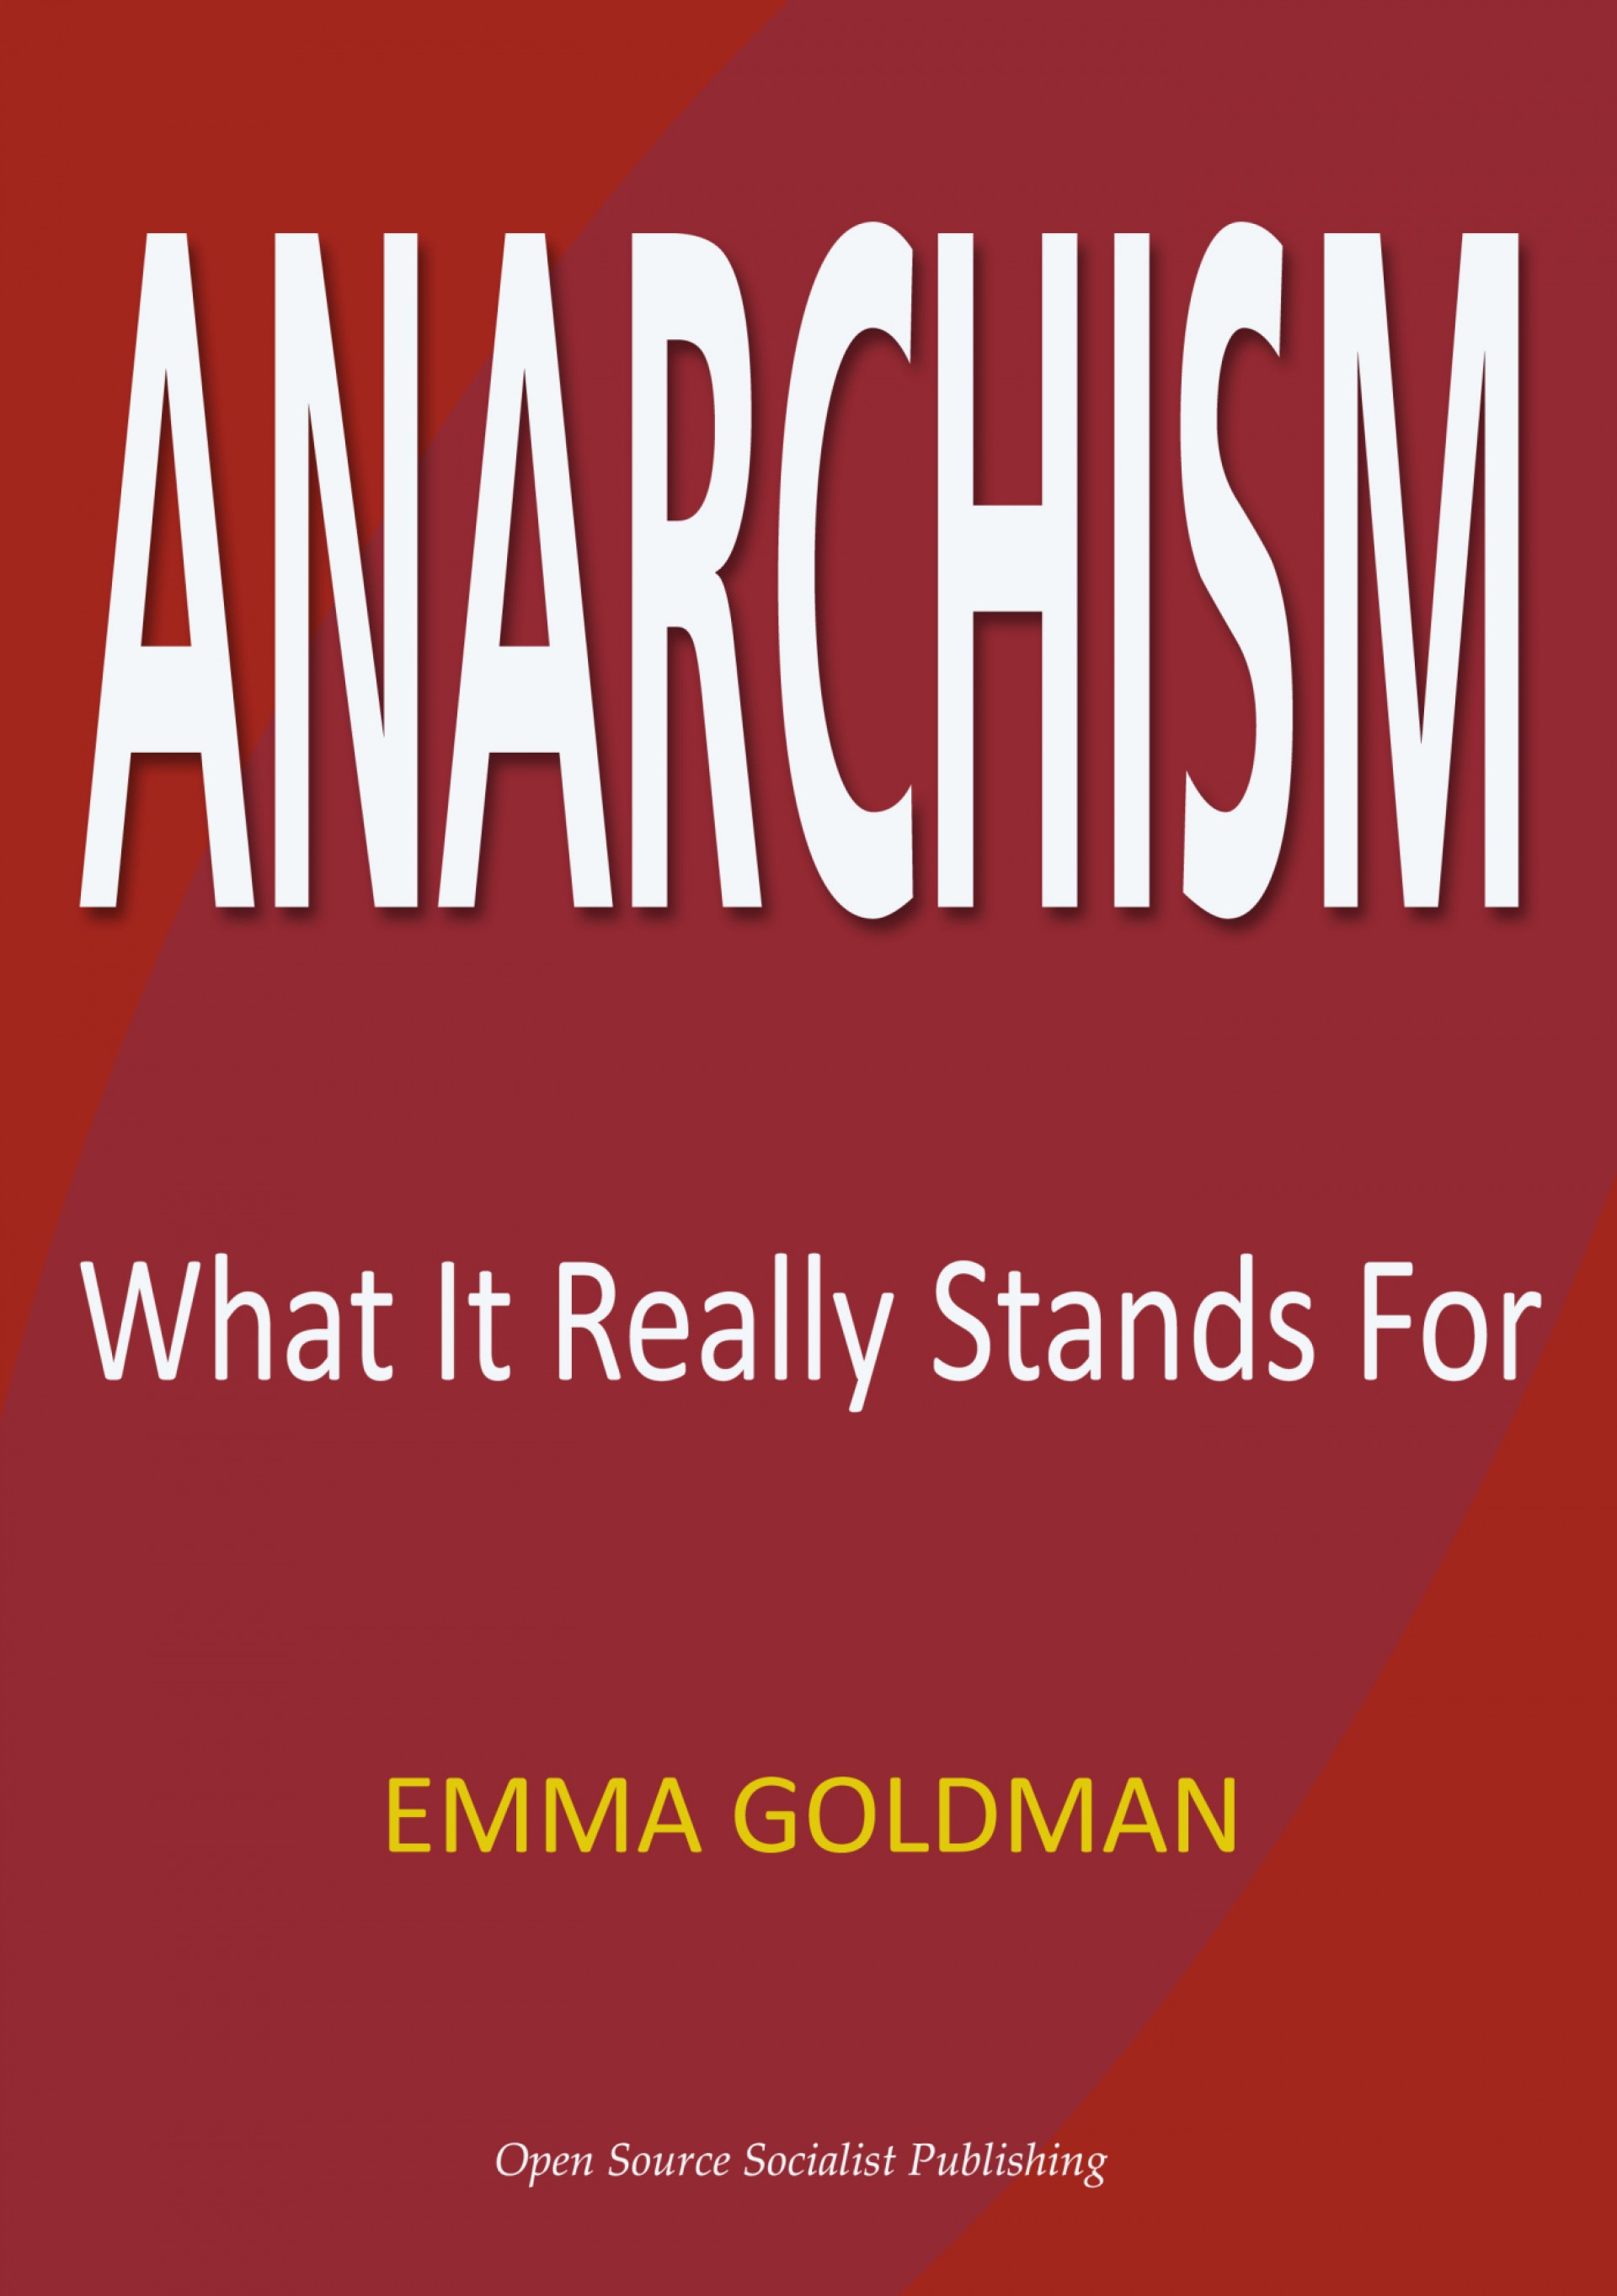 017 Essay Example Anarchism And Other Essays Anarch Wirsf Incredible Emma Goldman Summary Pdf 1920